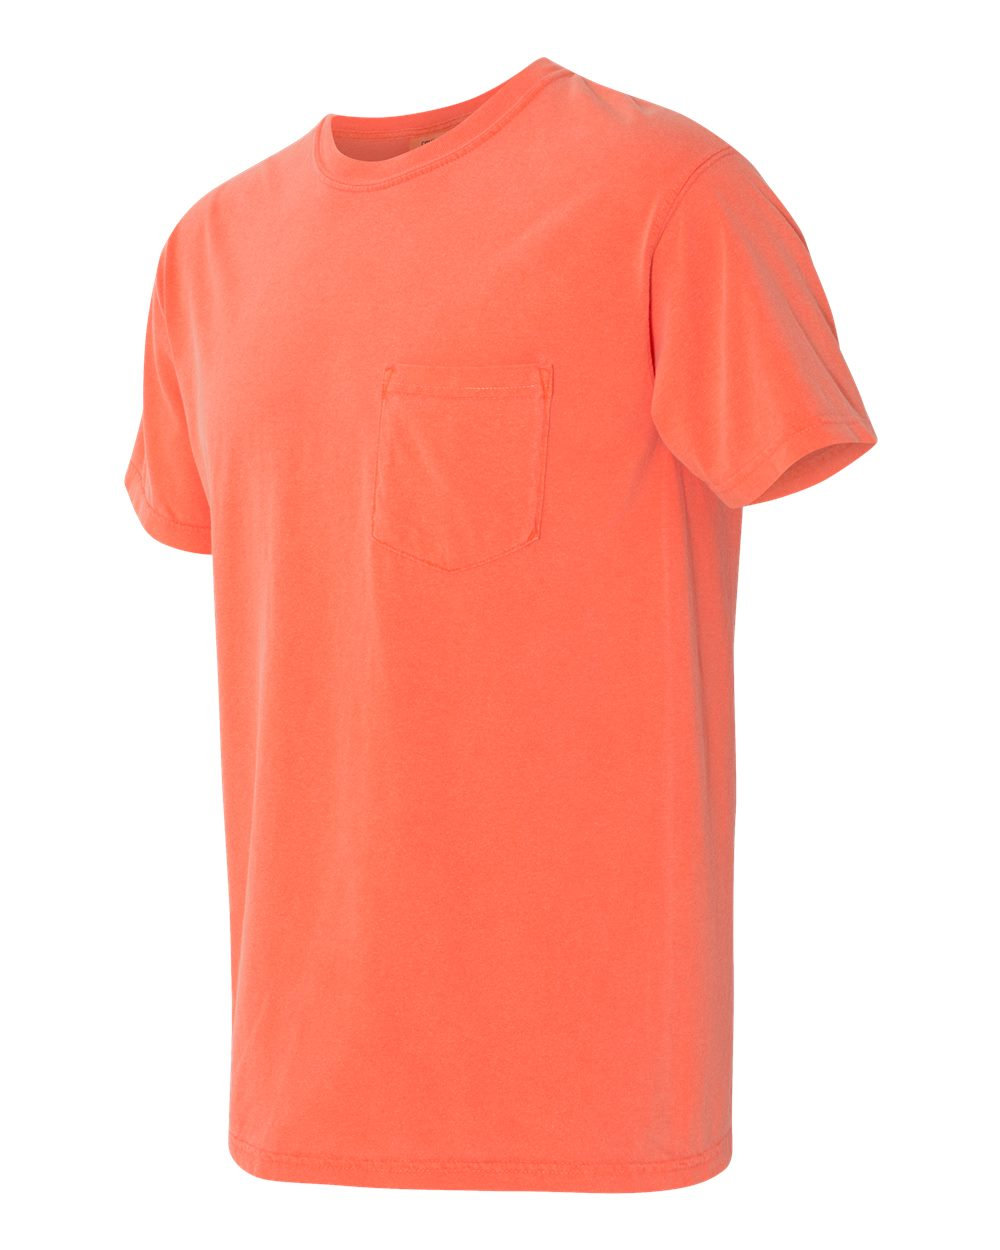 Comfort-Colors-Men-039-s-6-1-oz-Garment-Dyed-Pocket-T-Shirt-6030CC-S-3XL thumbnail 104